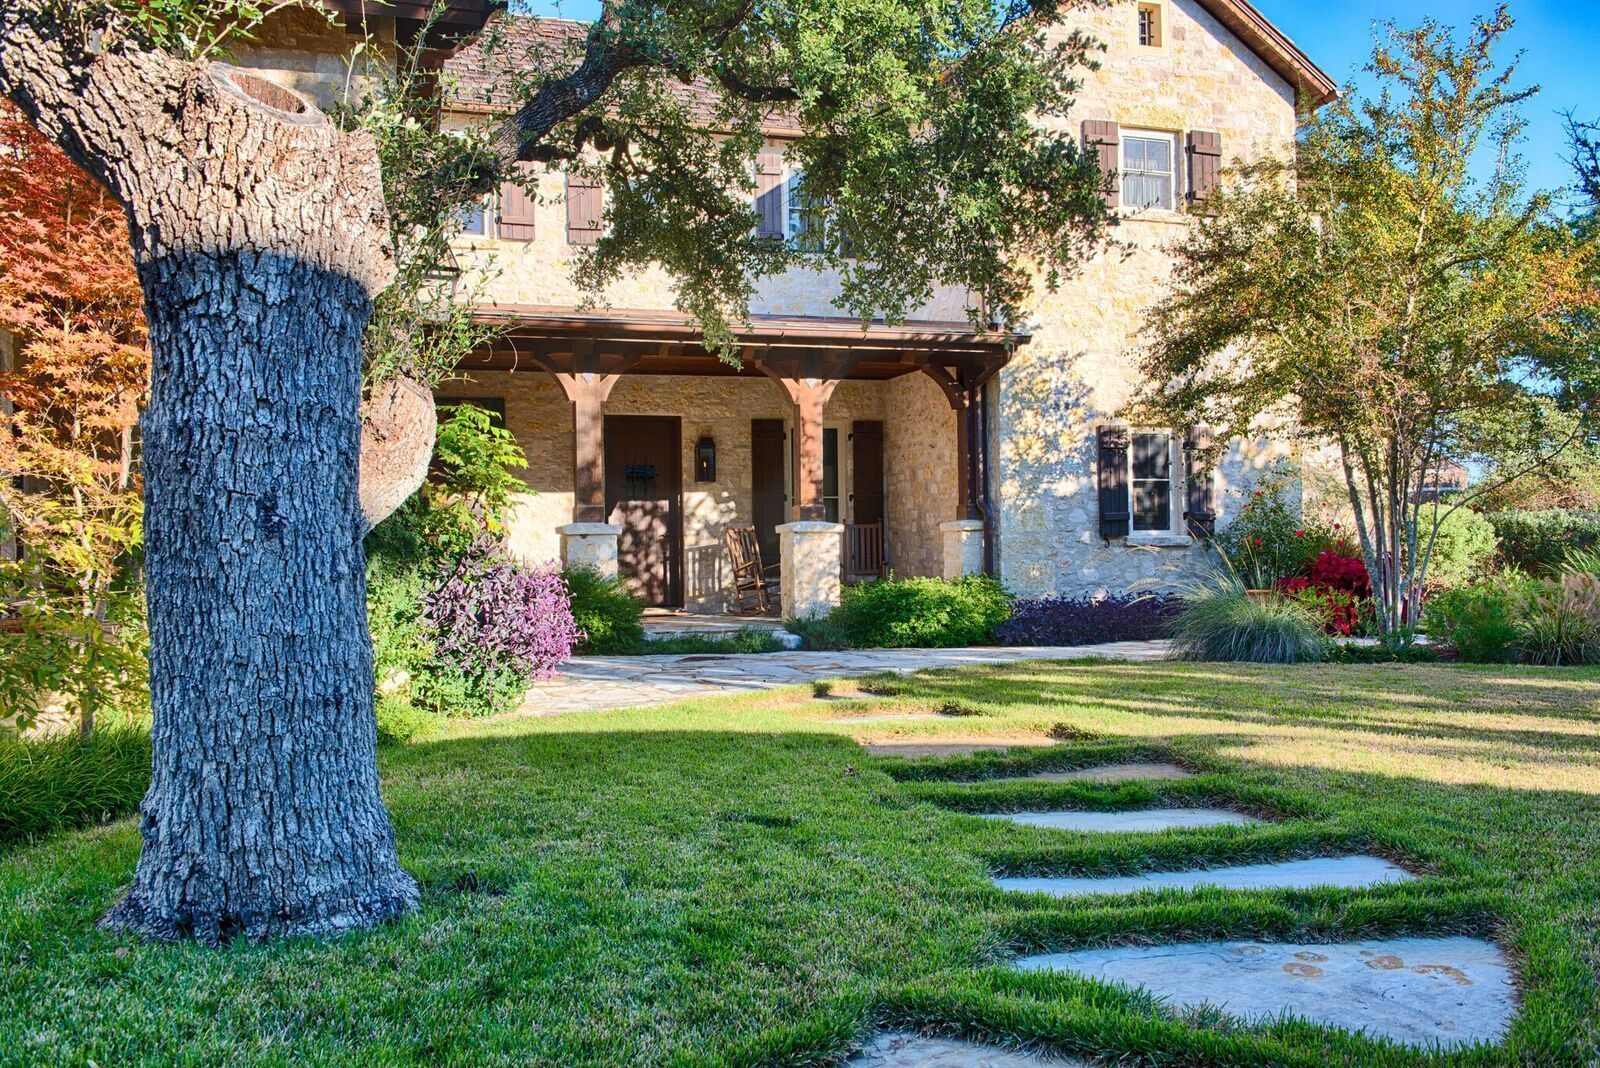 Hill country living dream homes exterior design house curb appeal home ideas makeover envy also rh pinterest